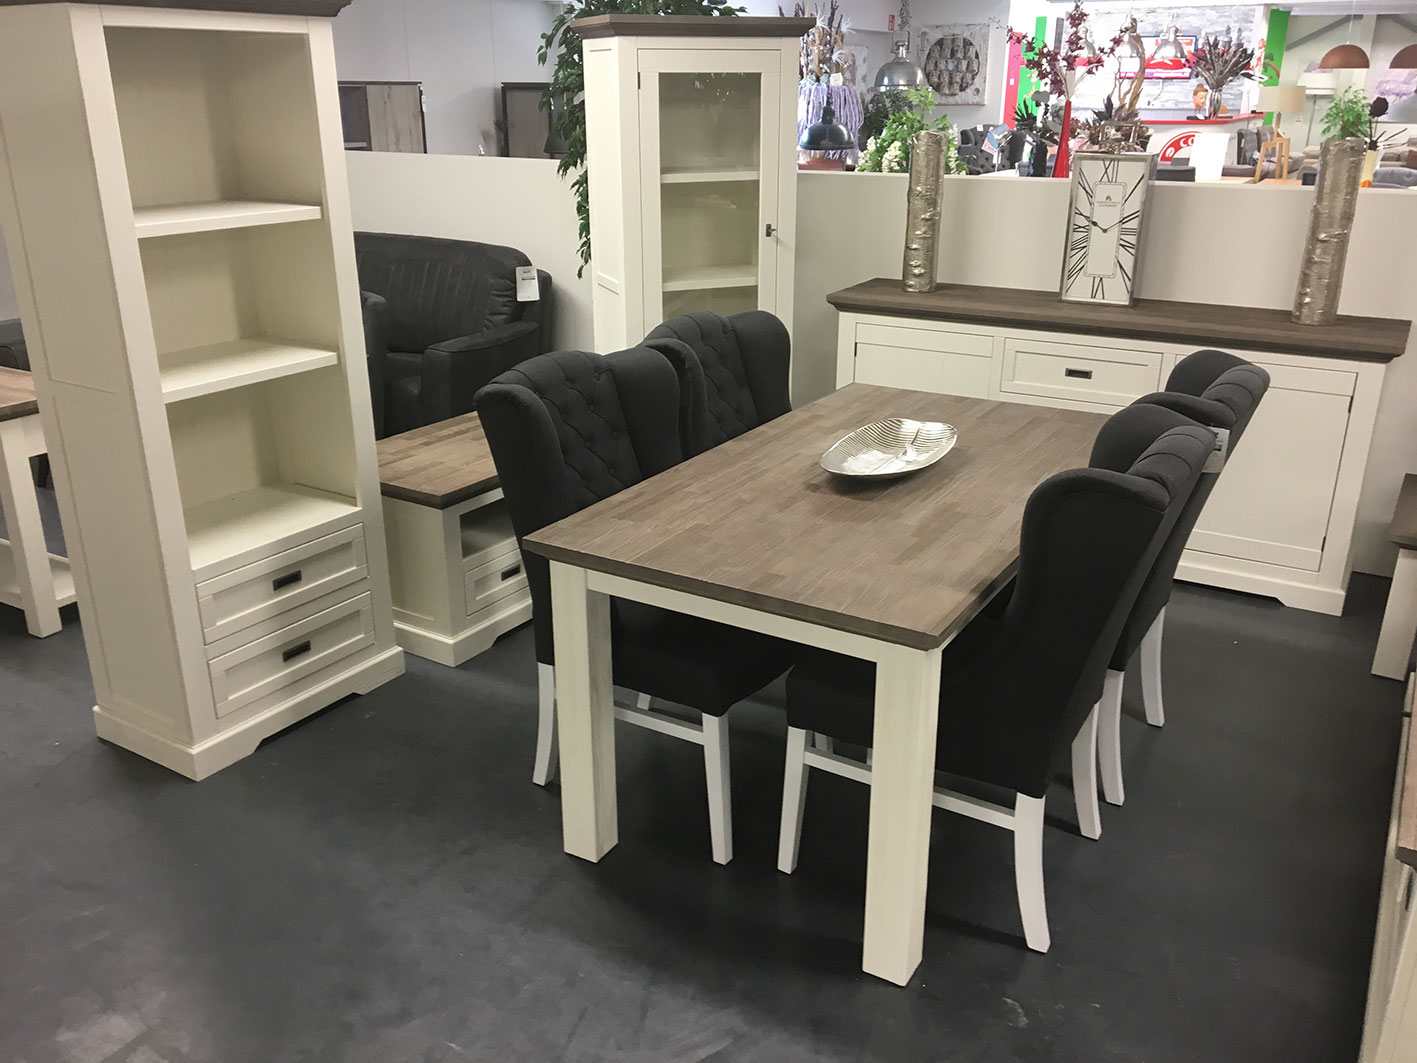 Complete woonkamers maxum megastore for Woonkamer inrichting compleet